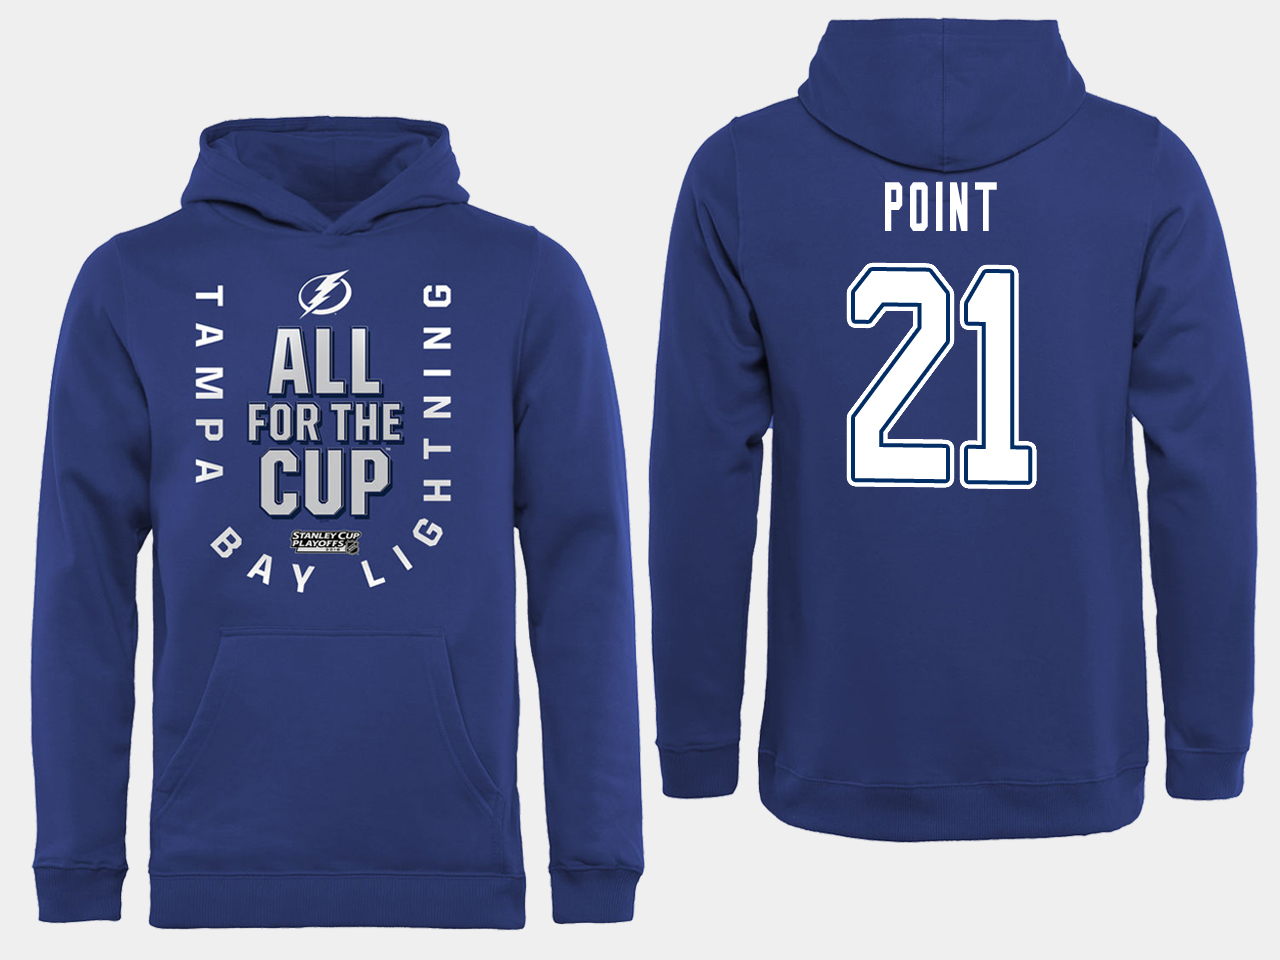 NHL Men adidas Tampa Bay Lightning 21 Point blue All for the Cup Hoodie